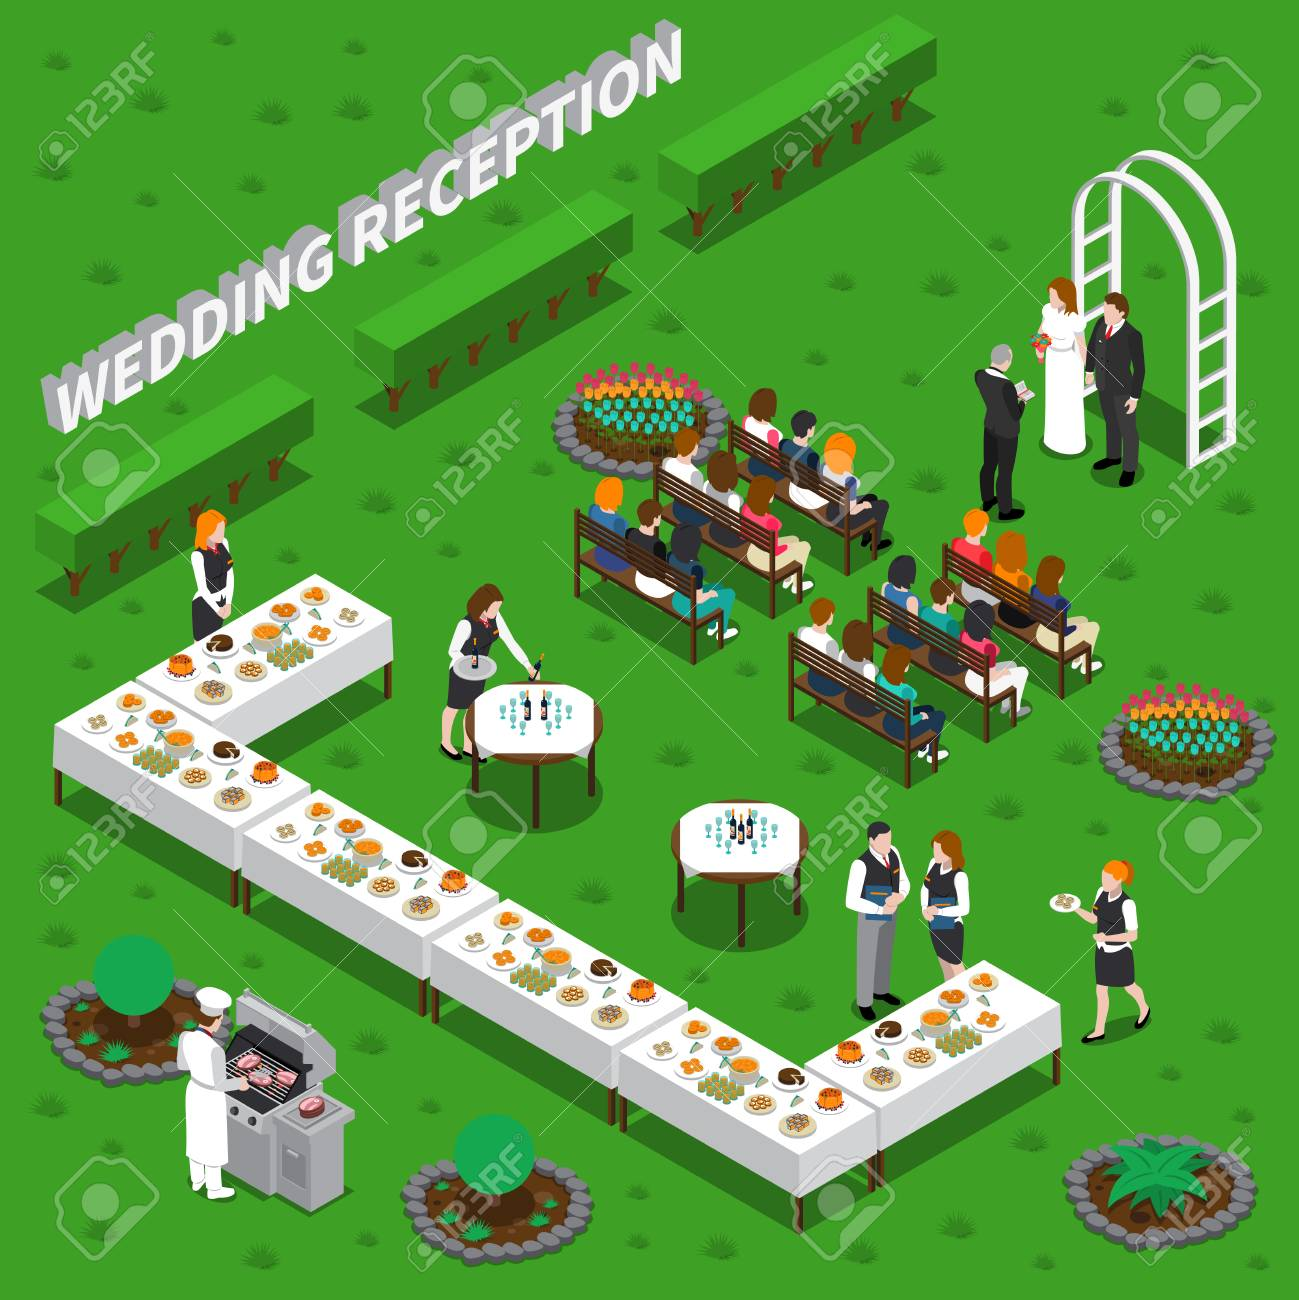 Wedding reception catering services isometric composition with ceremony, chef, waiters, table setting on green background vector illustration - 88167096